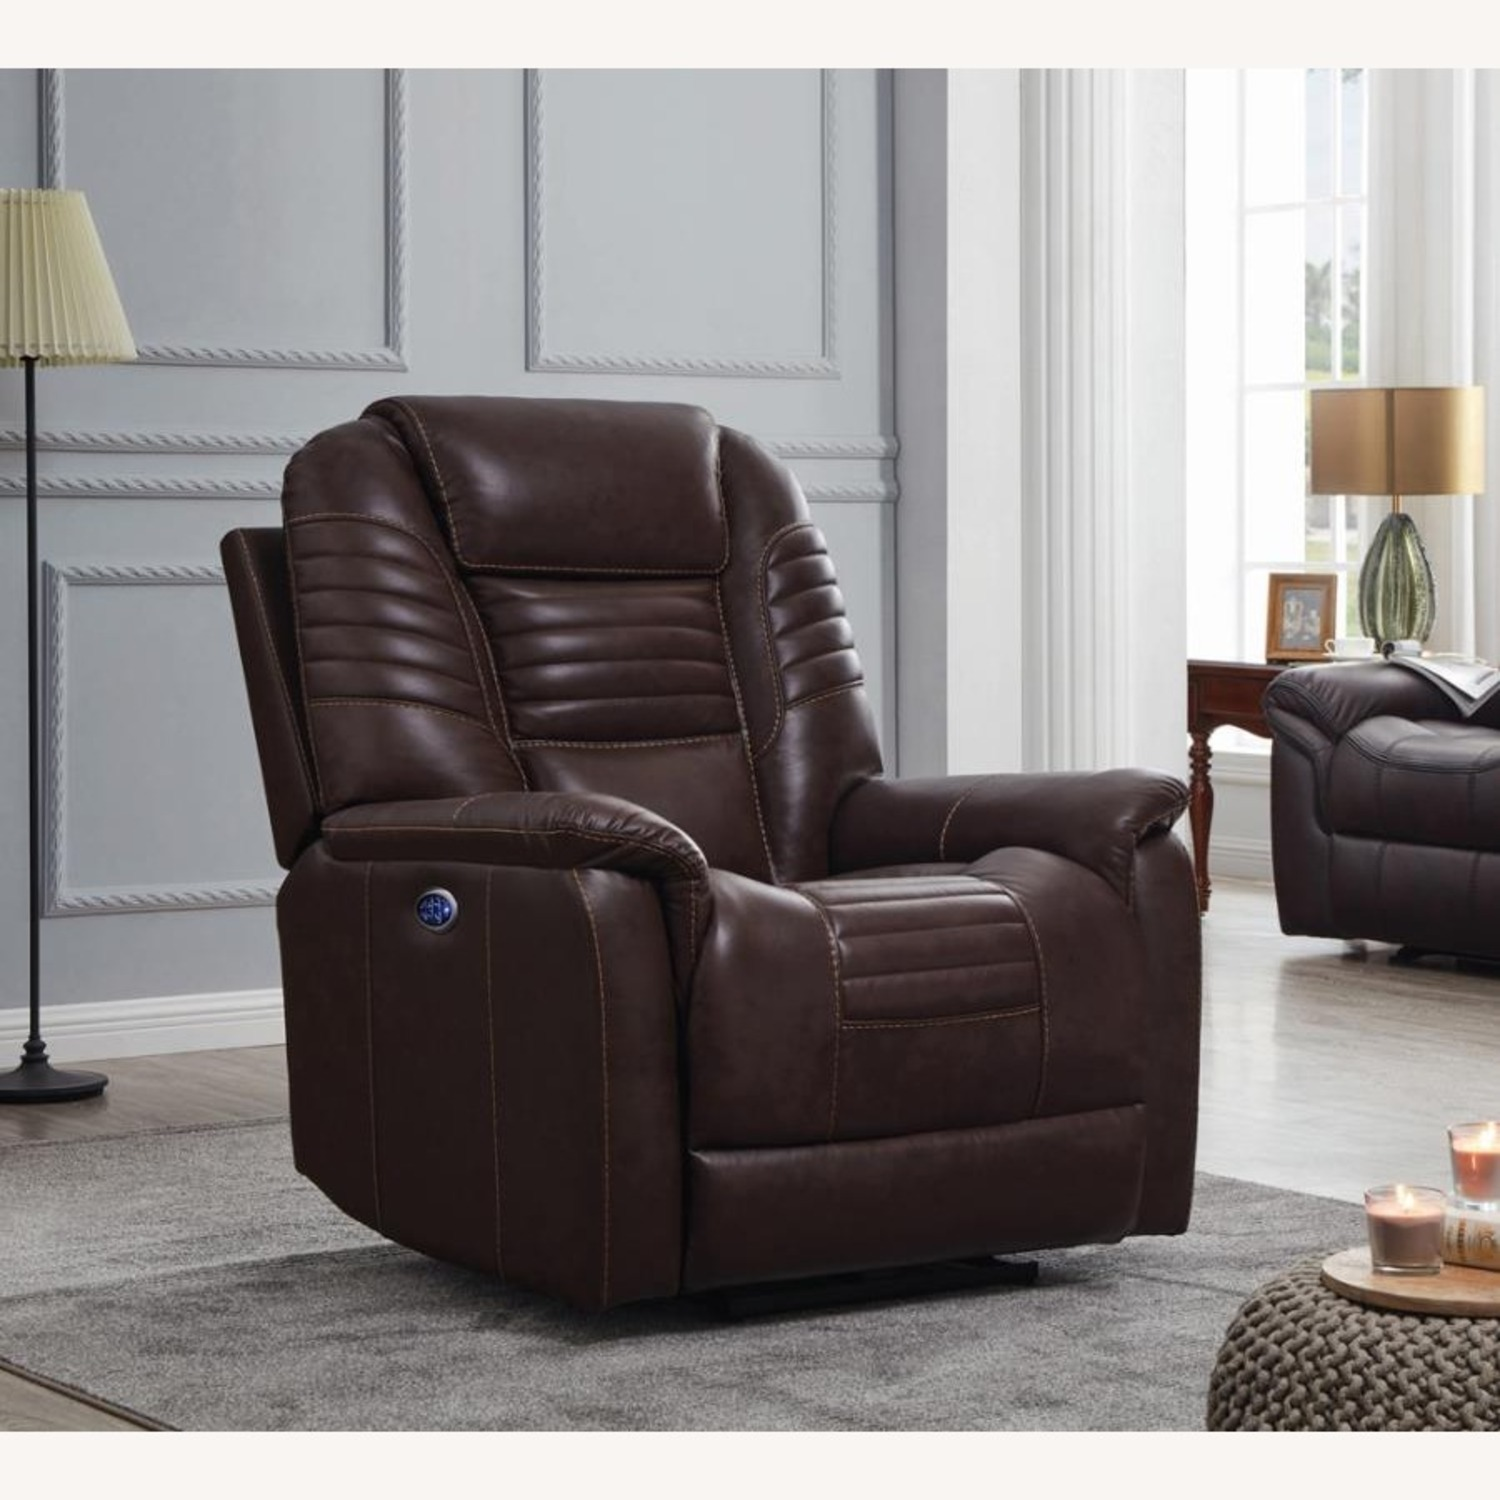 Power Recliner In Cozy Brown Leather Upholstery - image-8